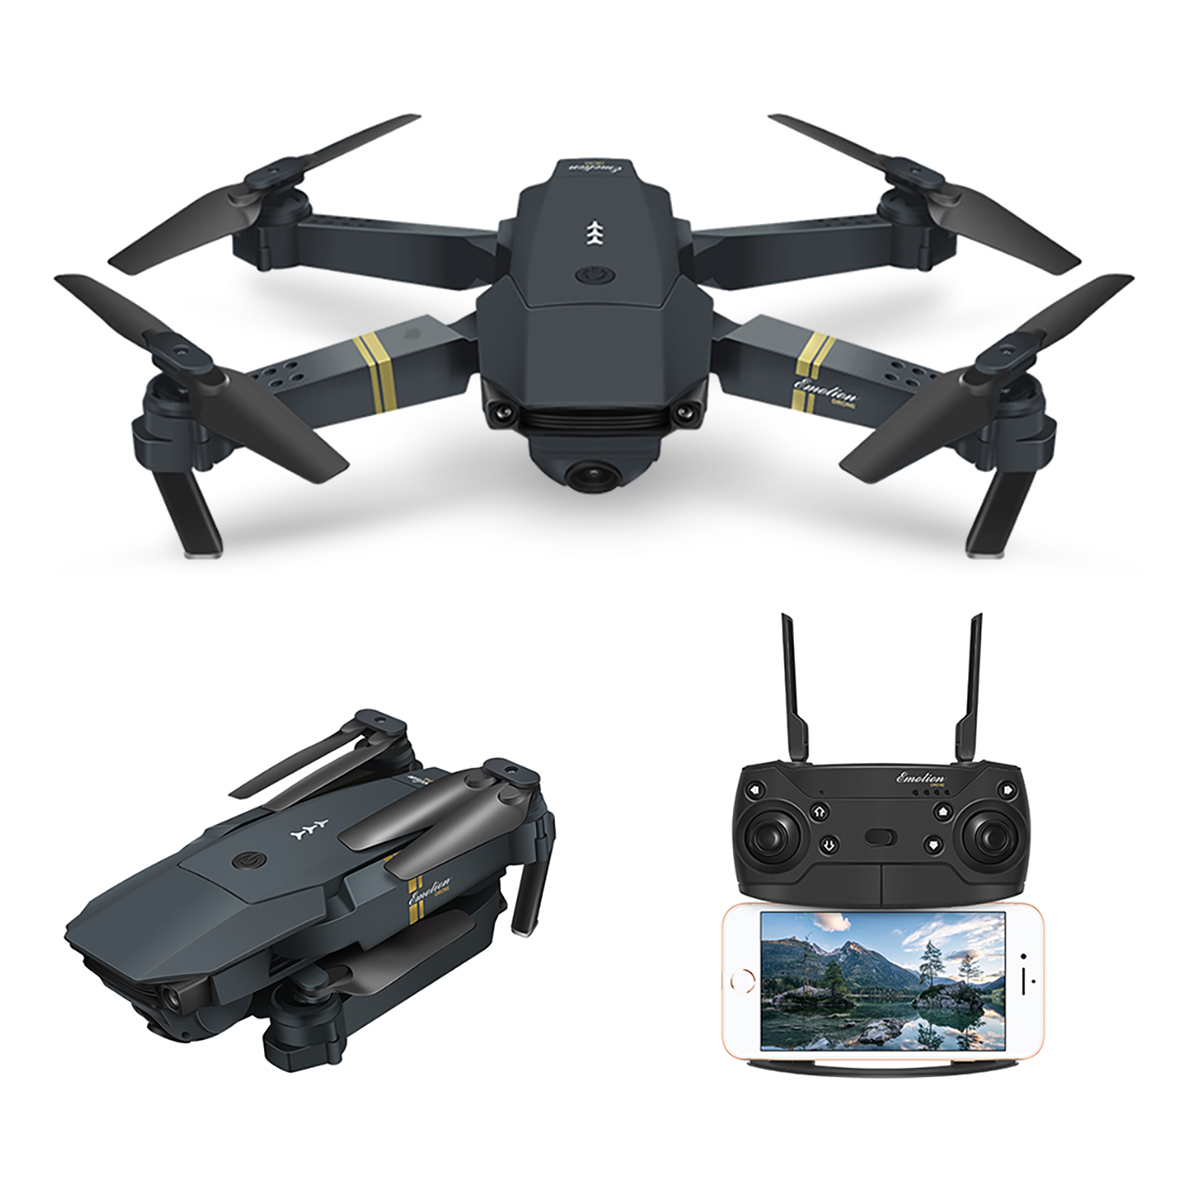 Reasonable Drone X Pro 1080p Hd Camera Wifi App Fpv Foldable Wide-angle 4* Batteries Buy One Get One Free Rc Model Vehicles & Kits